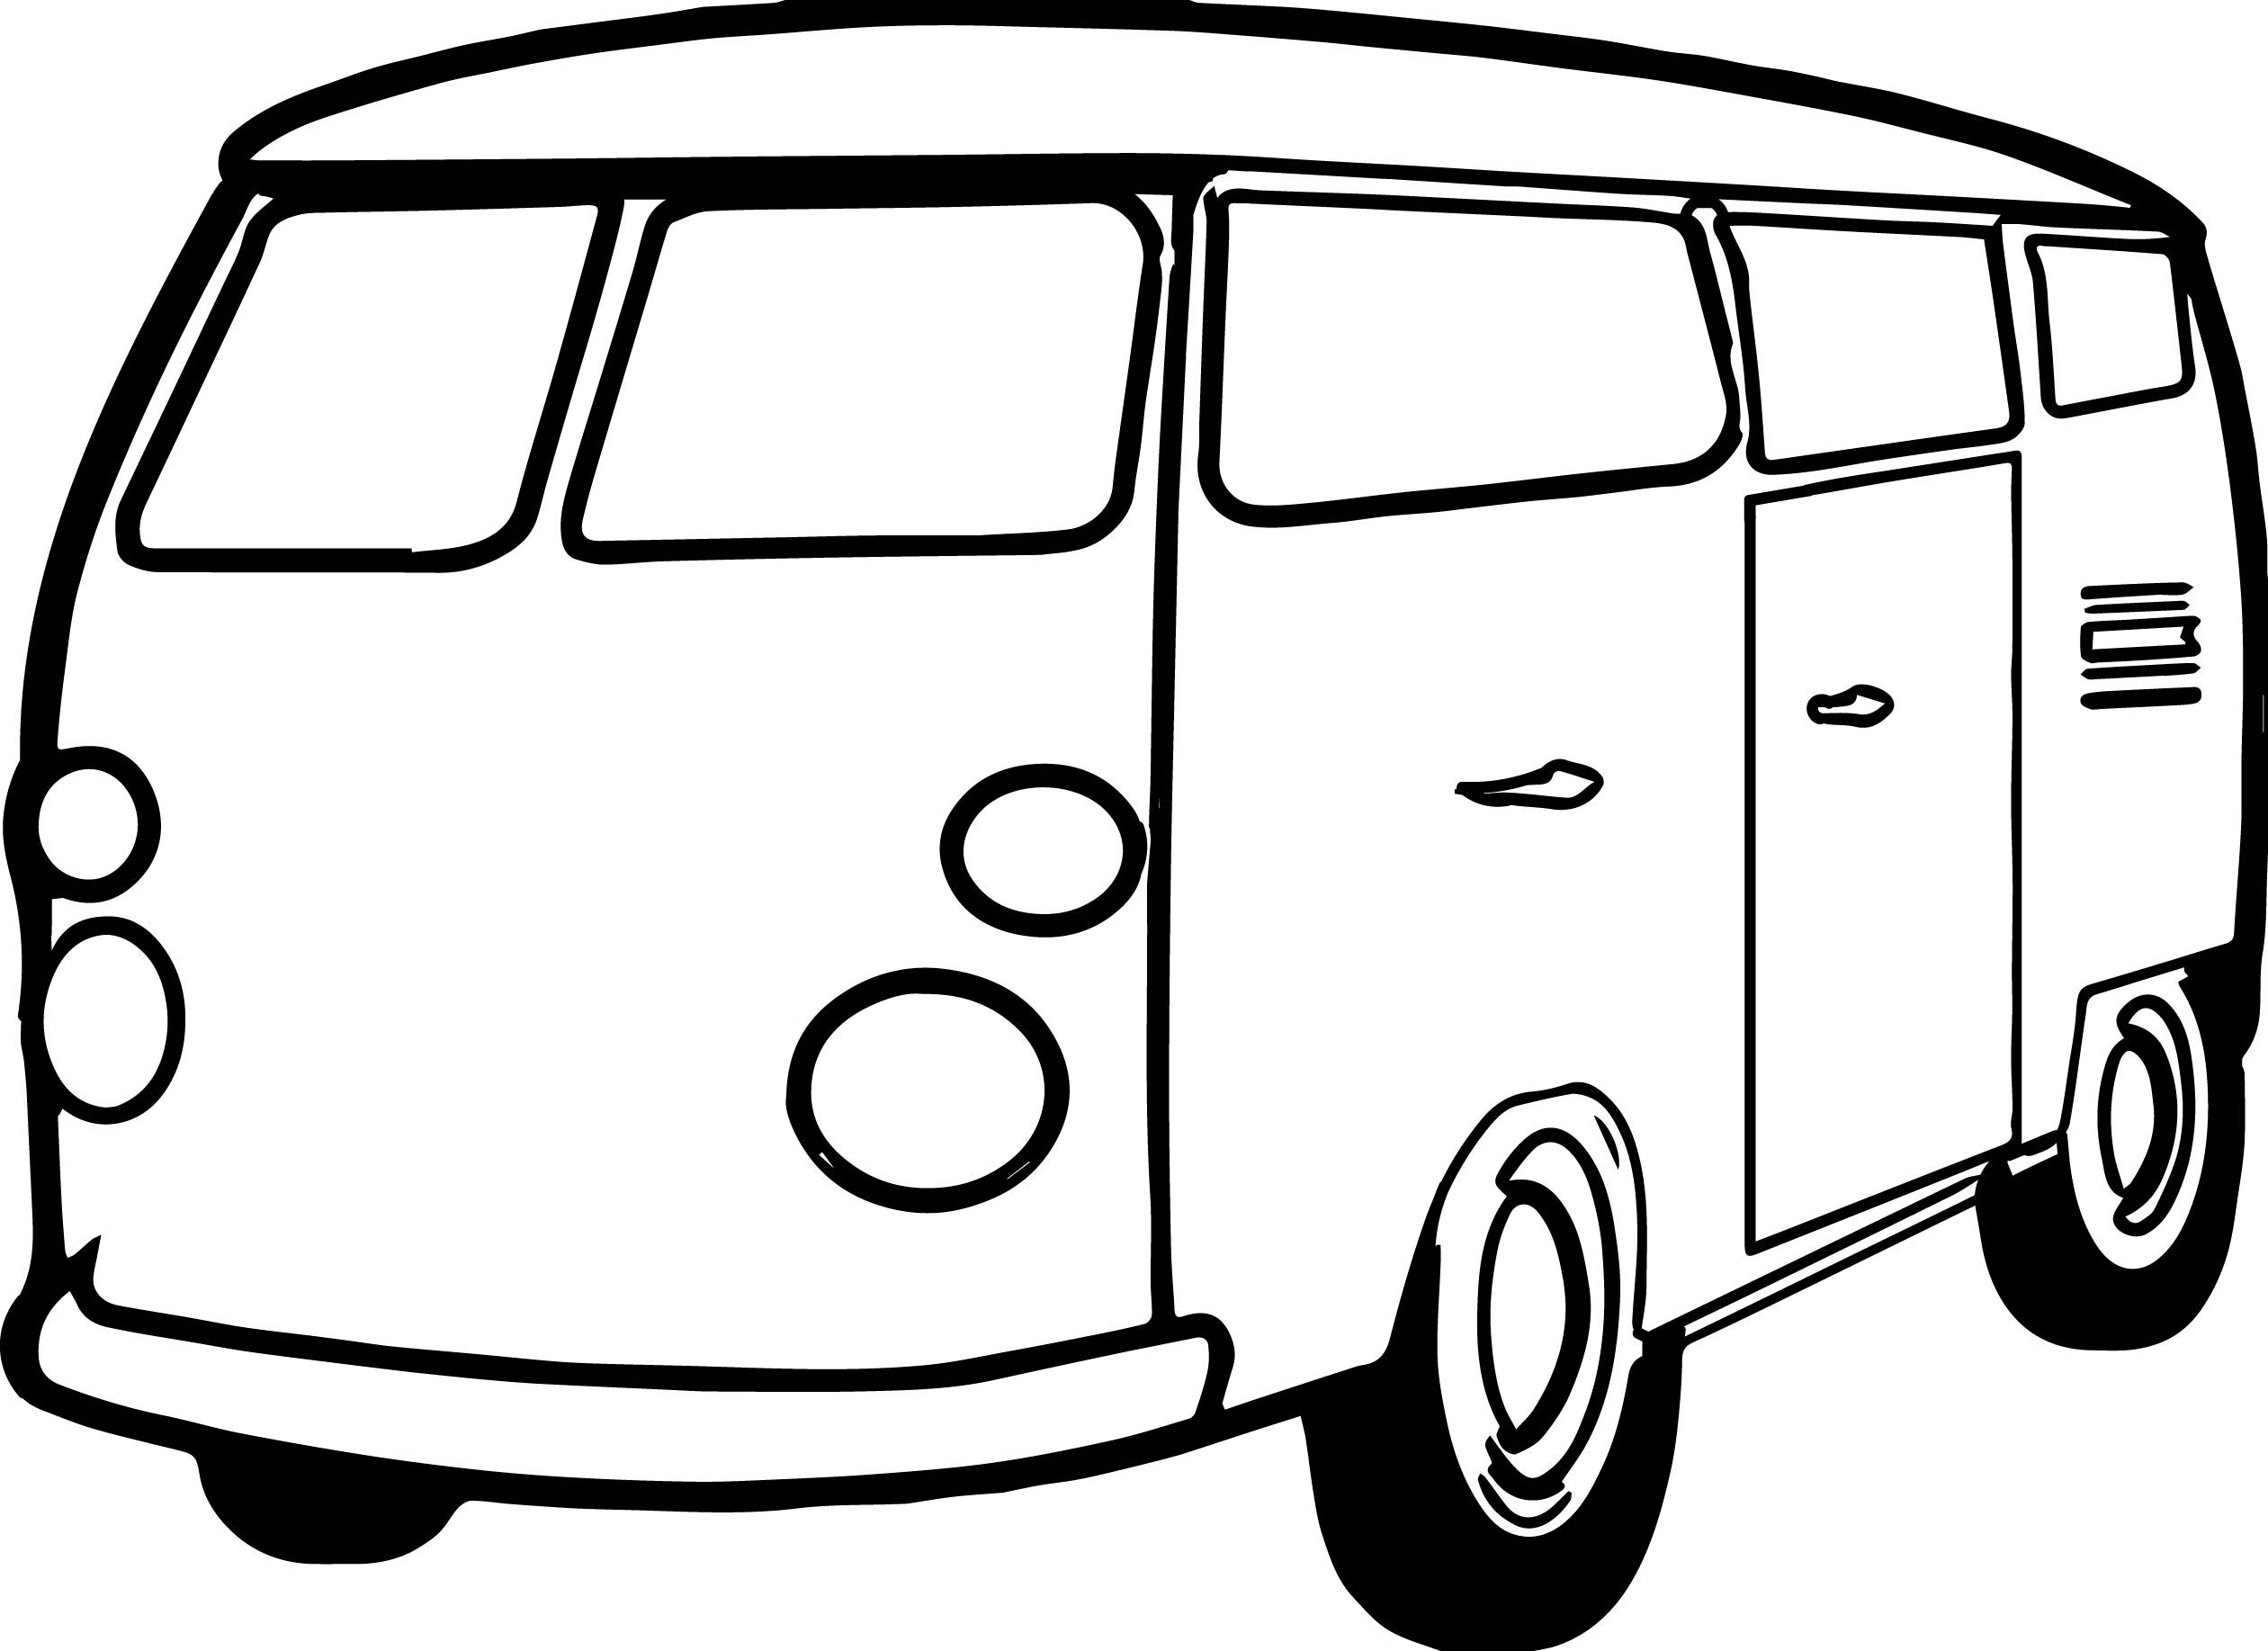 Awesome Van Minibus Coloring Page Coloring Pages Coloring Pages For Boys Boy Coloring